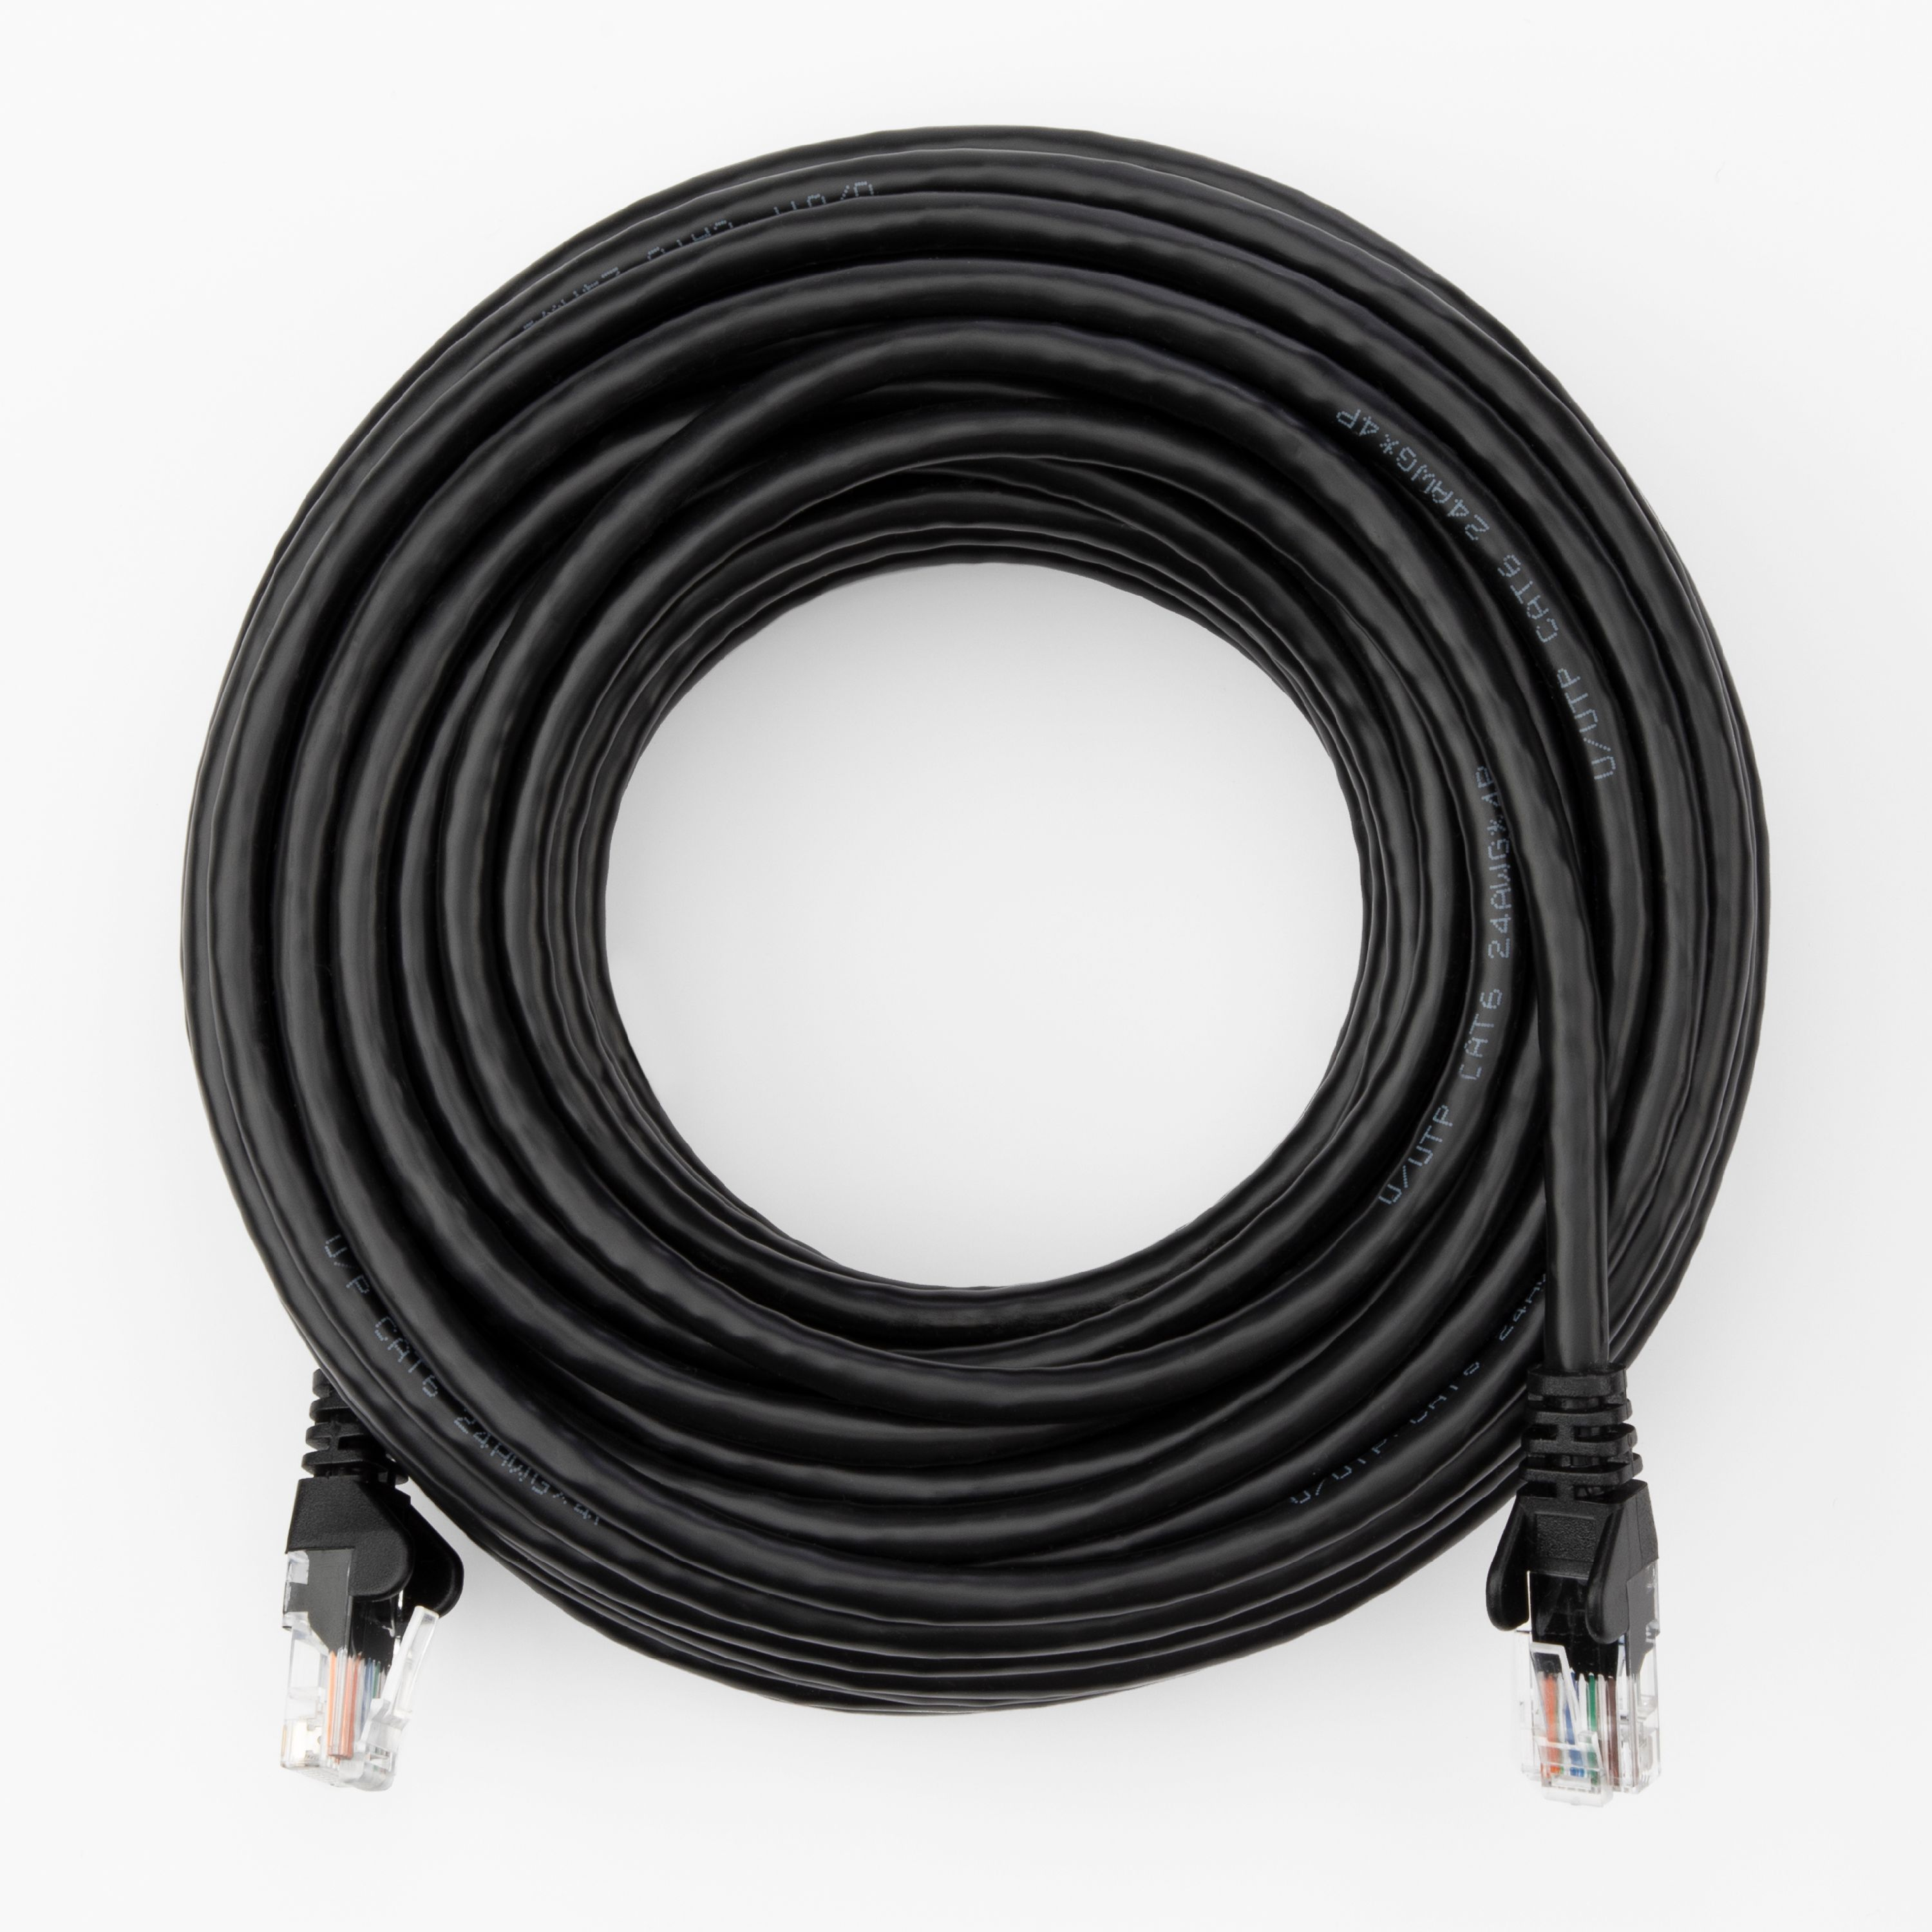 Conecto Connection Cable Ethernet Cable Black Black 3,00m Network Cable